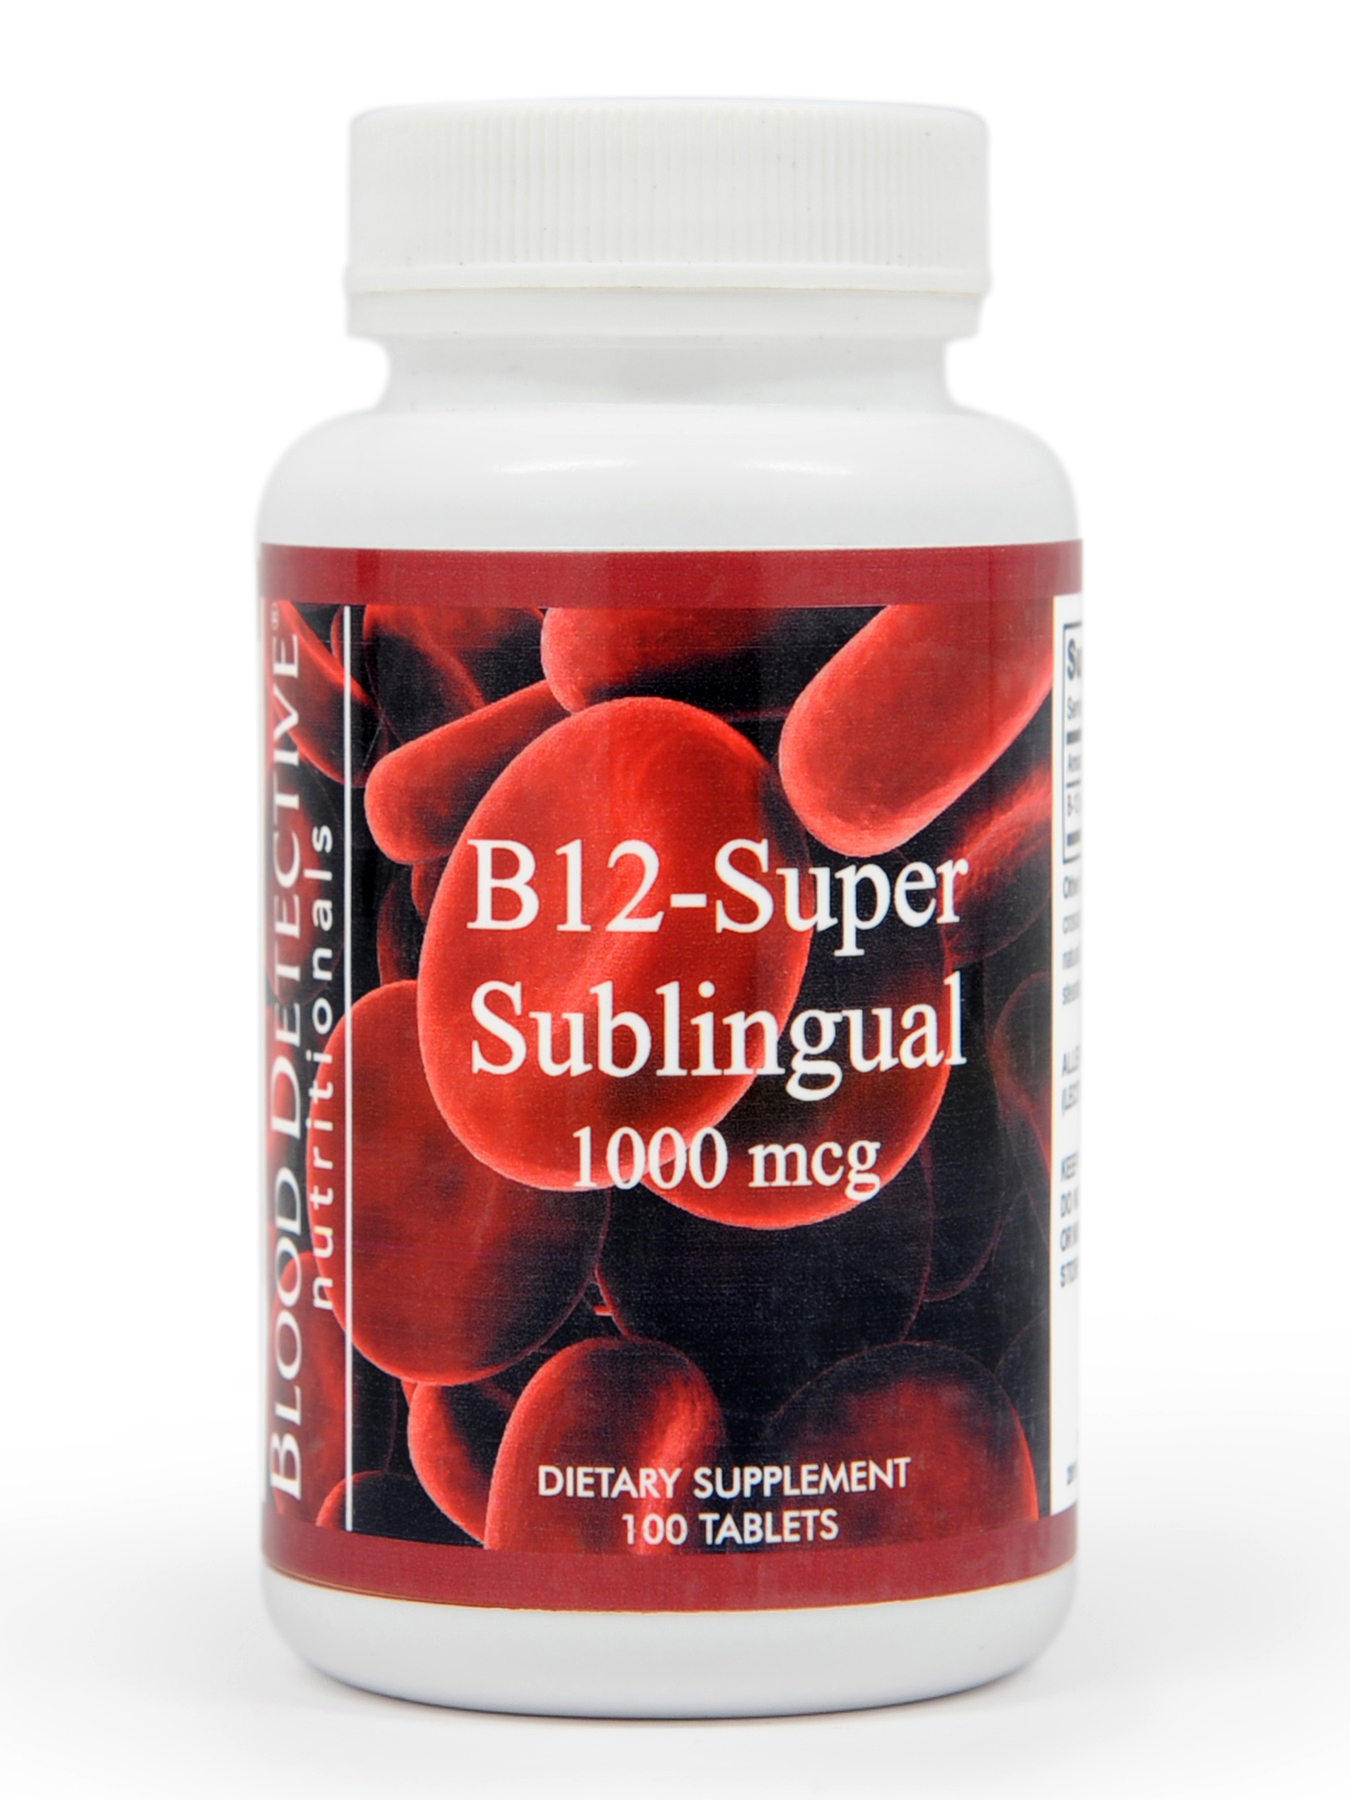 B12-Super Sublingual